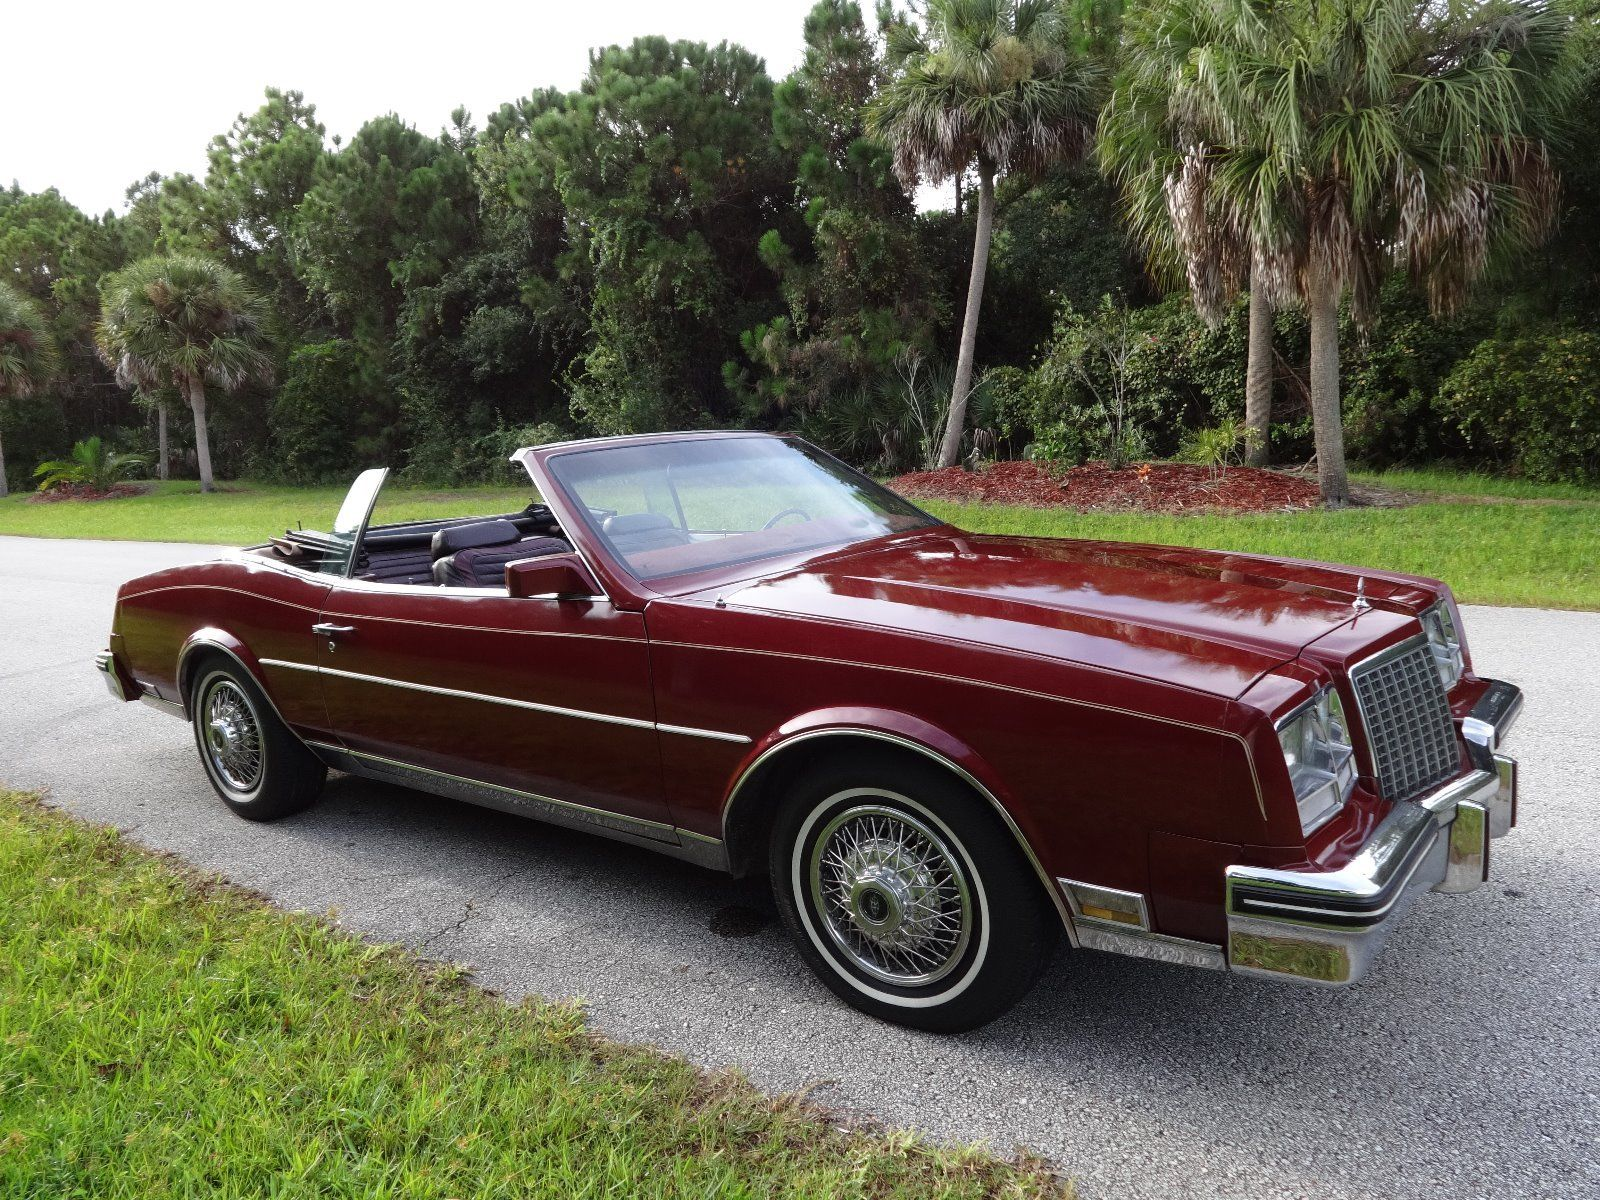 Buick Riviera Convertible Na Prodej on 1989 Lesabre Coupe